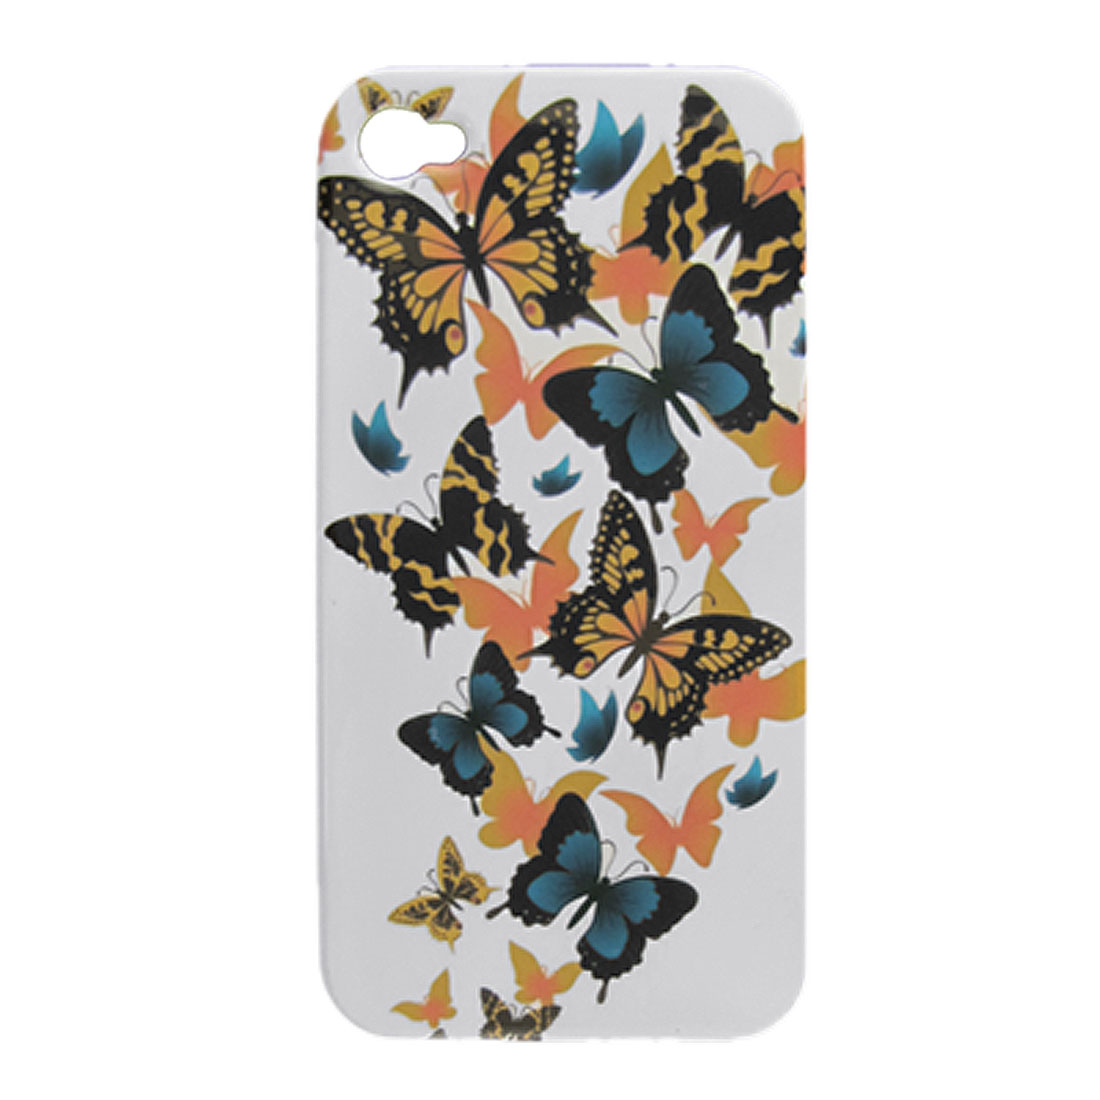 Butterflies Hard Plastic Back Cover Case for iPhone 4 4G